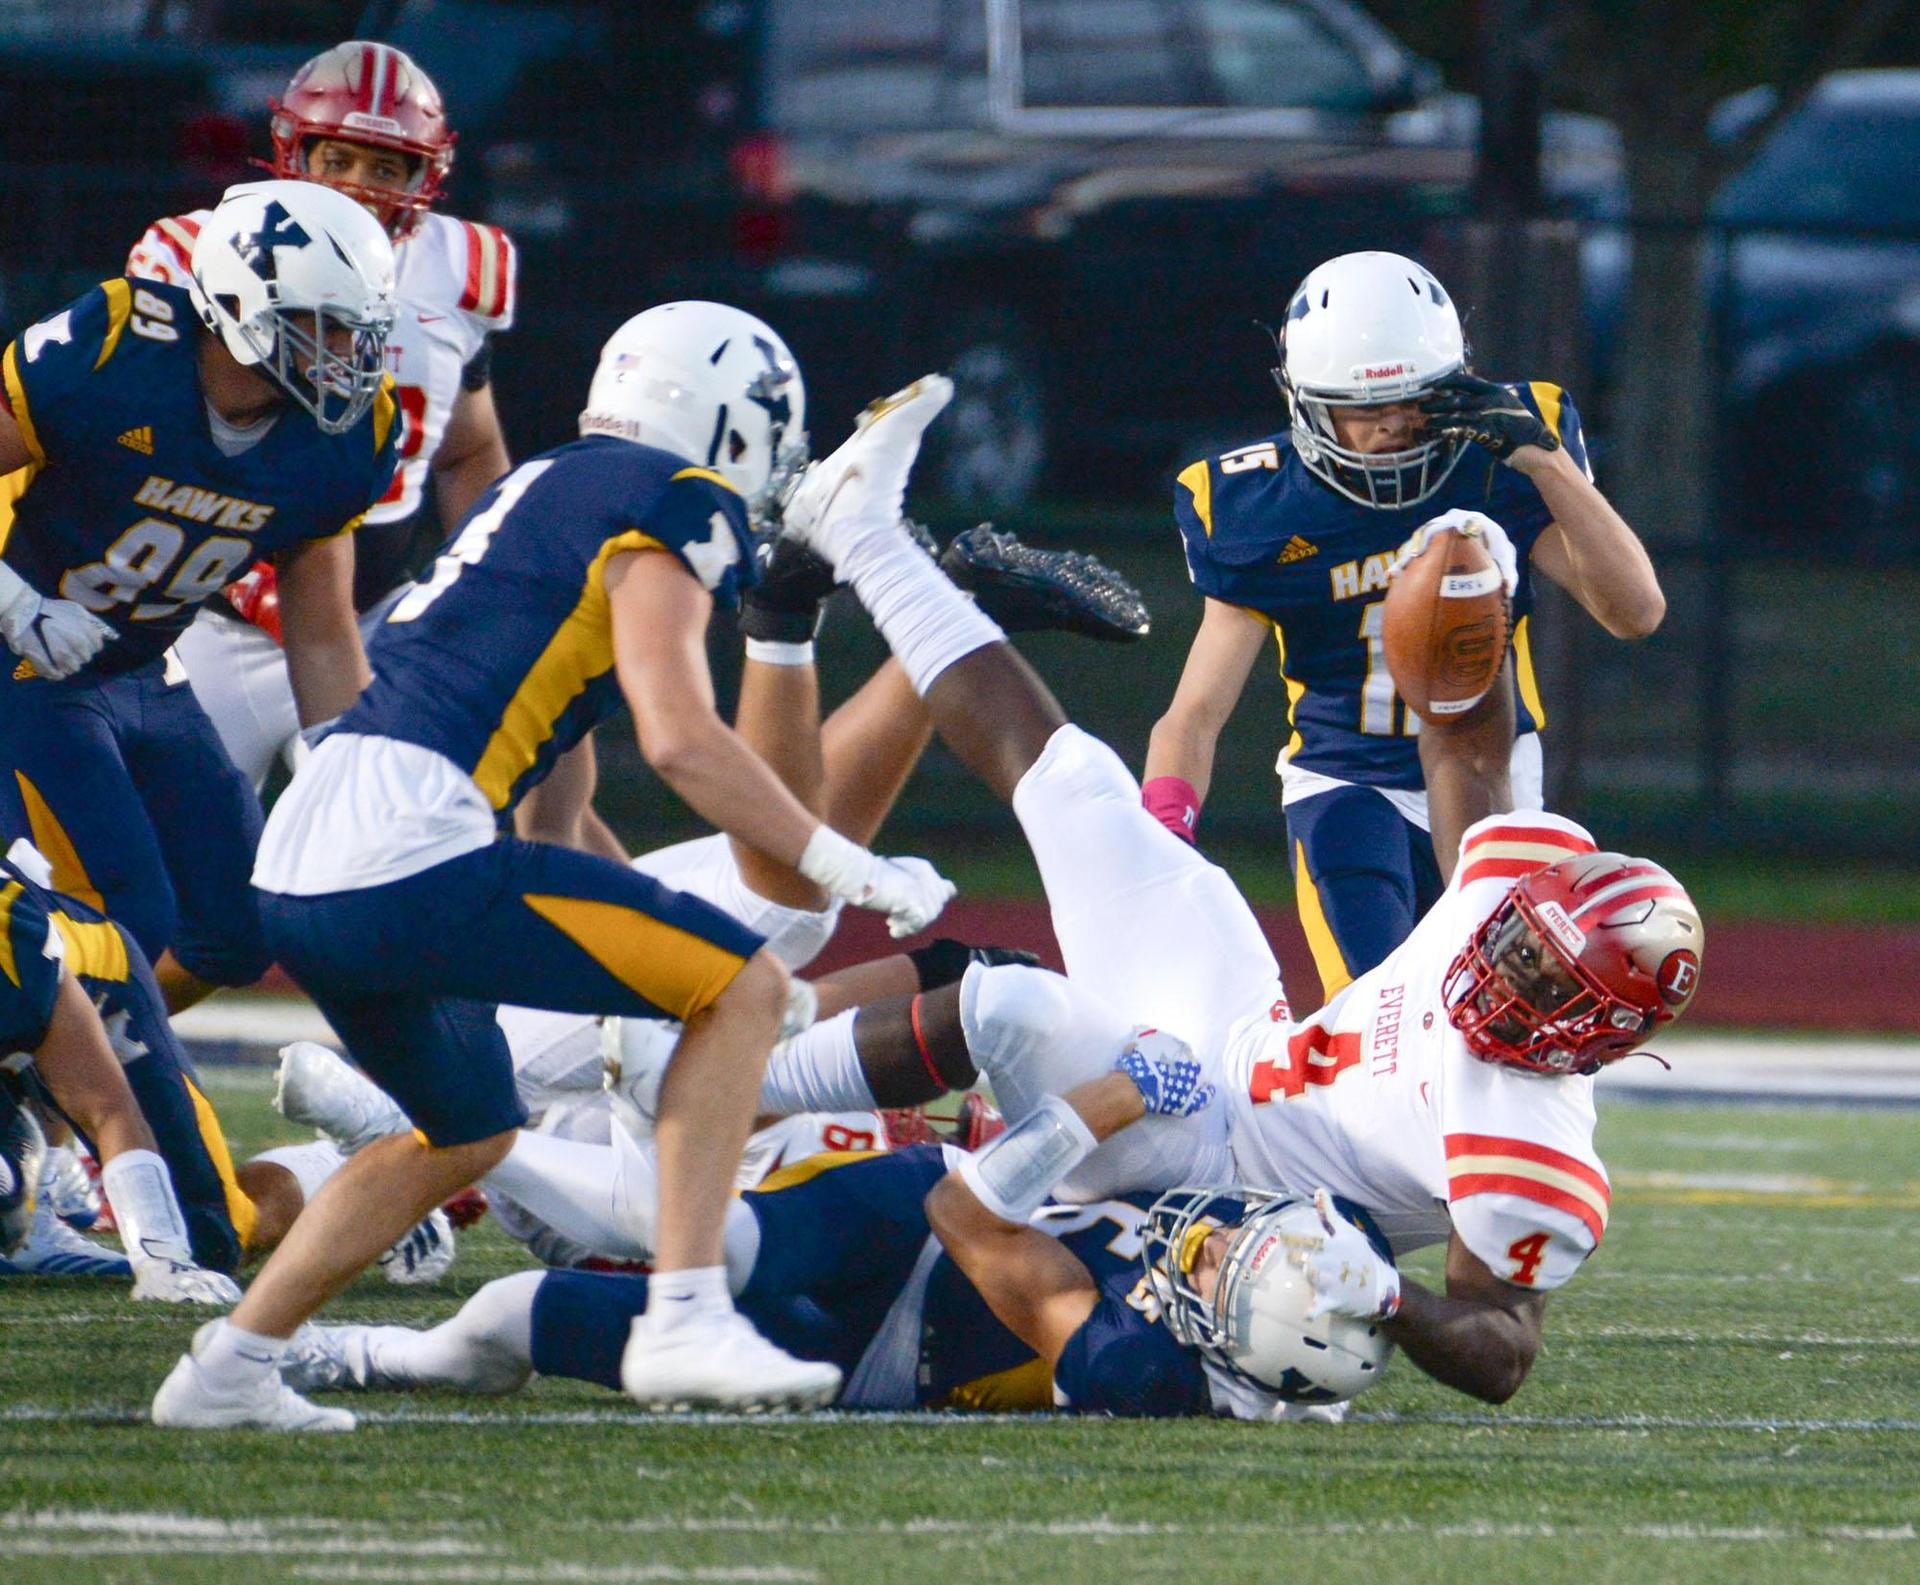 Football action, Tide player in a pile of Xaverian defenders